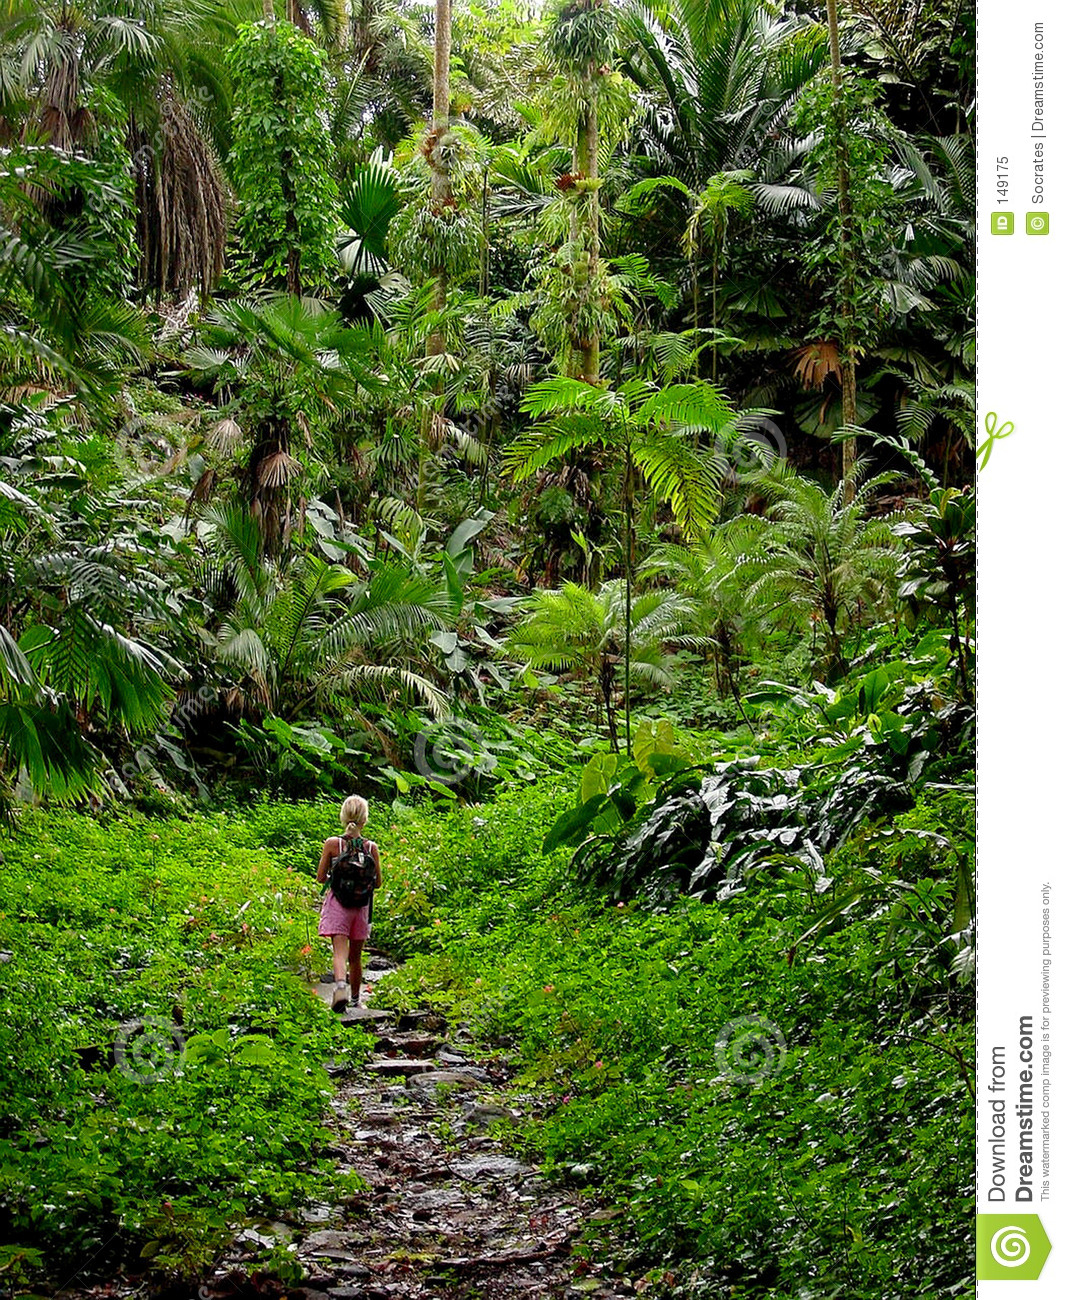 Alone In The Jungle Editorial Image. Image Of Tropical